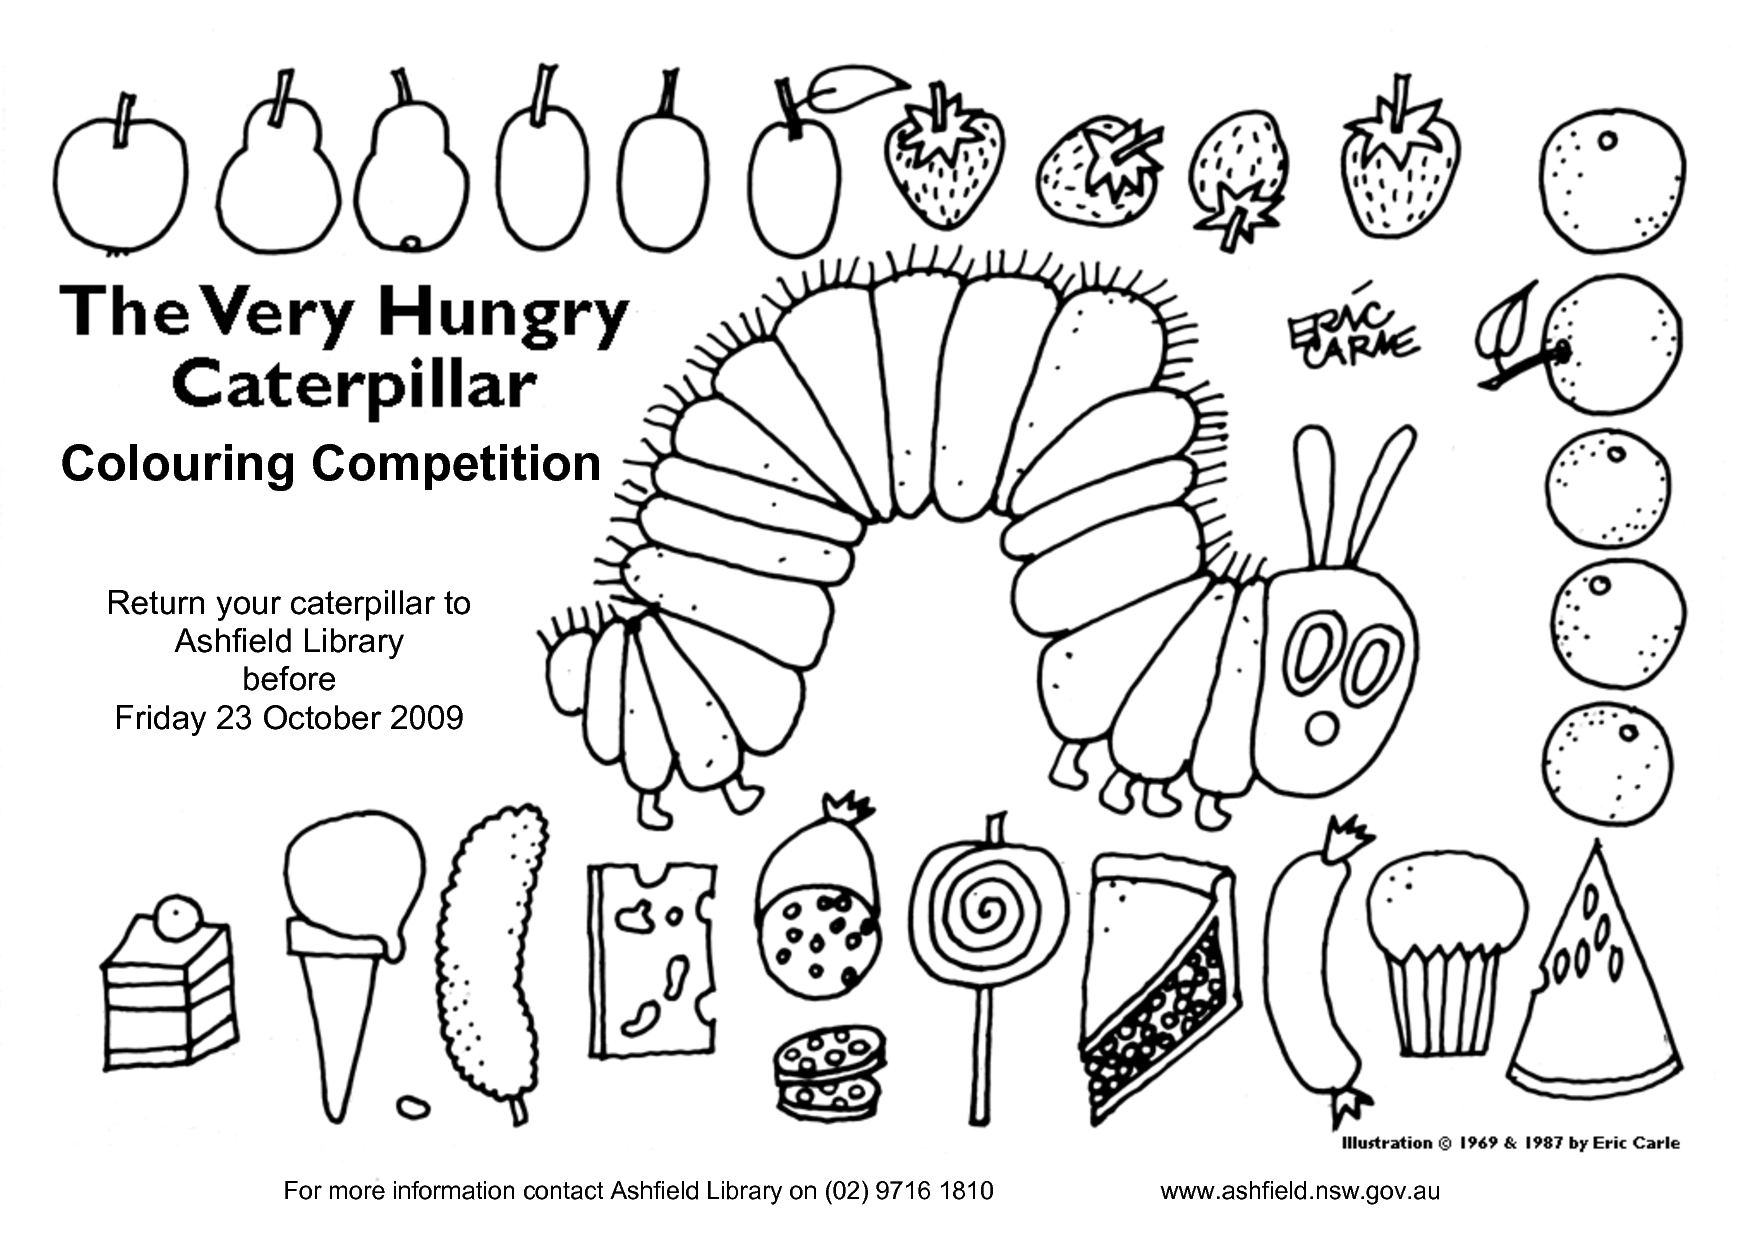 Very Hungry Caterpillar 40 Ann Colouring Competition By Alendar